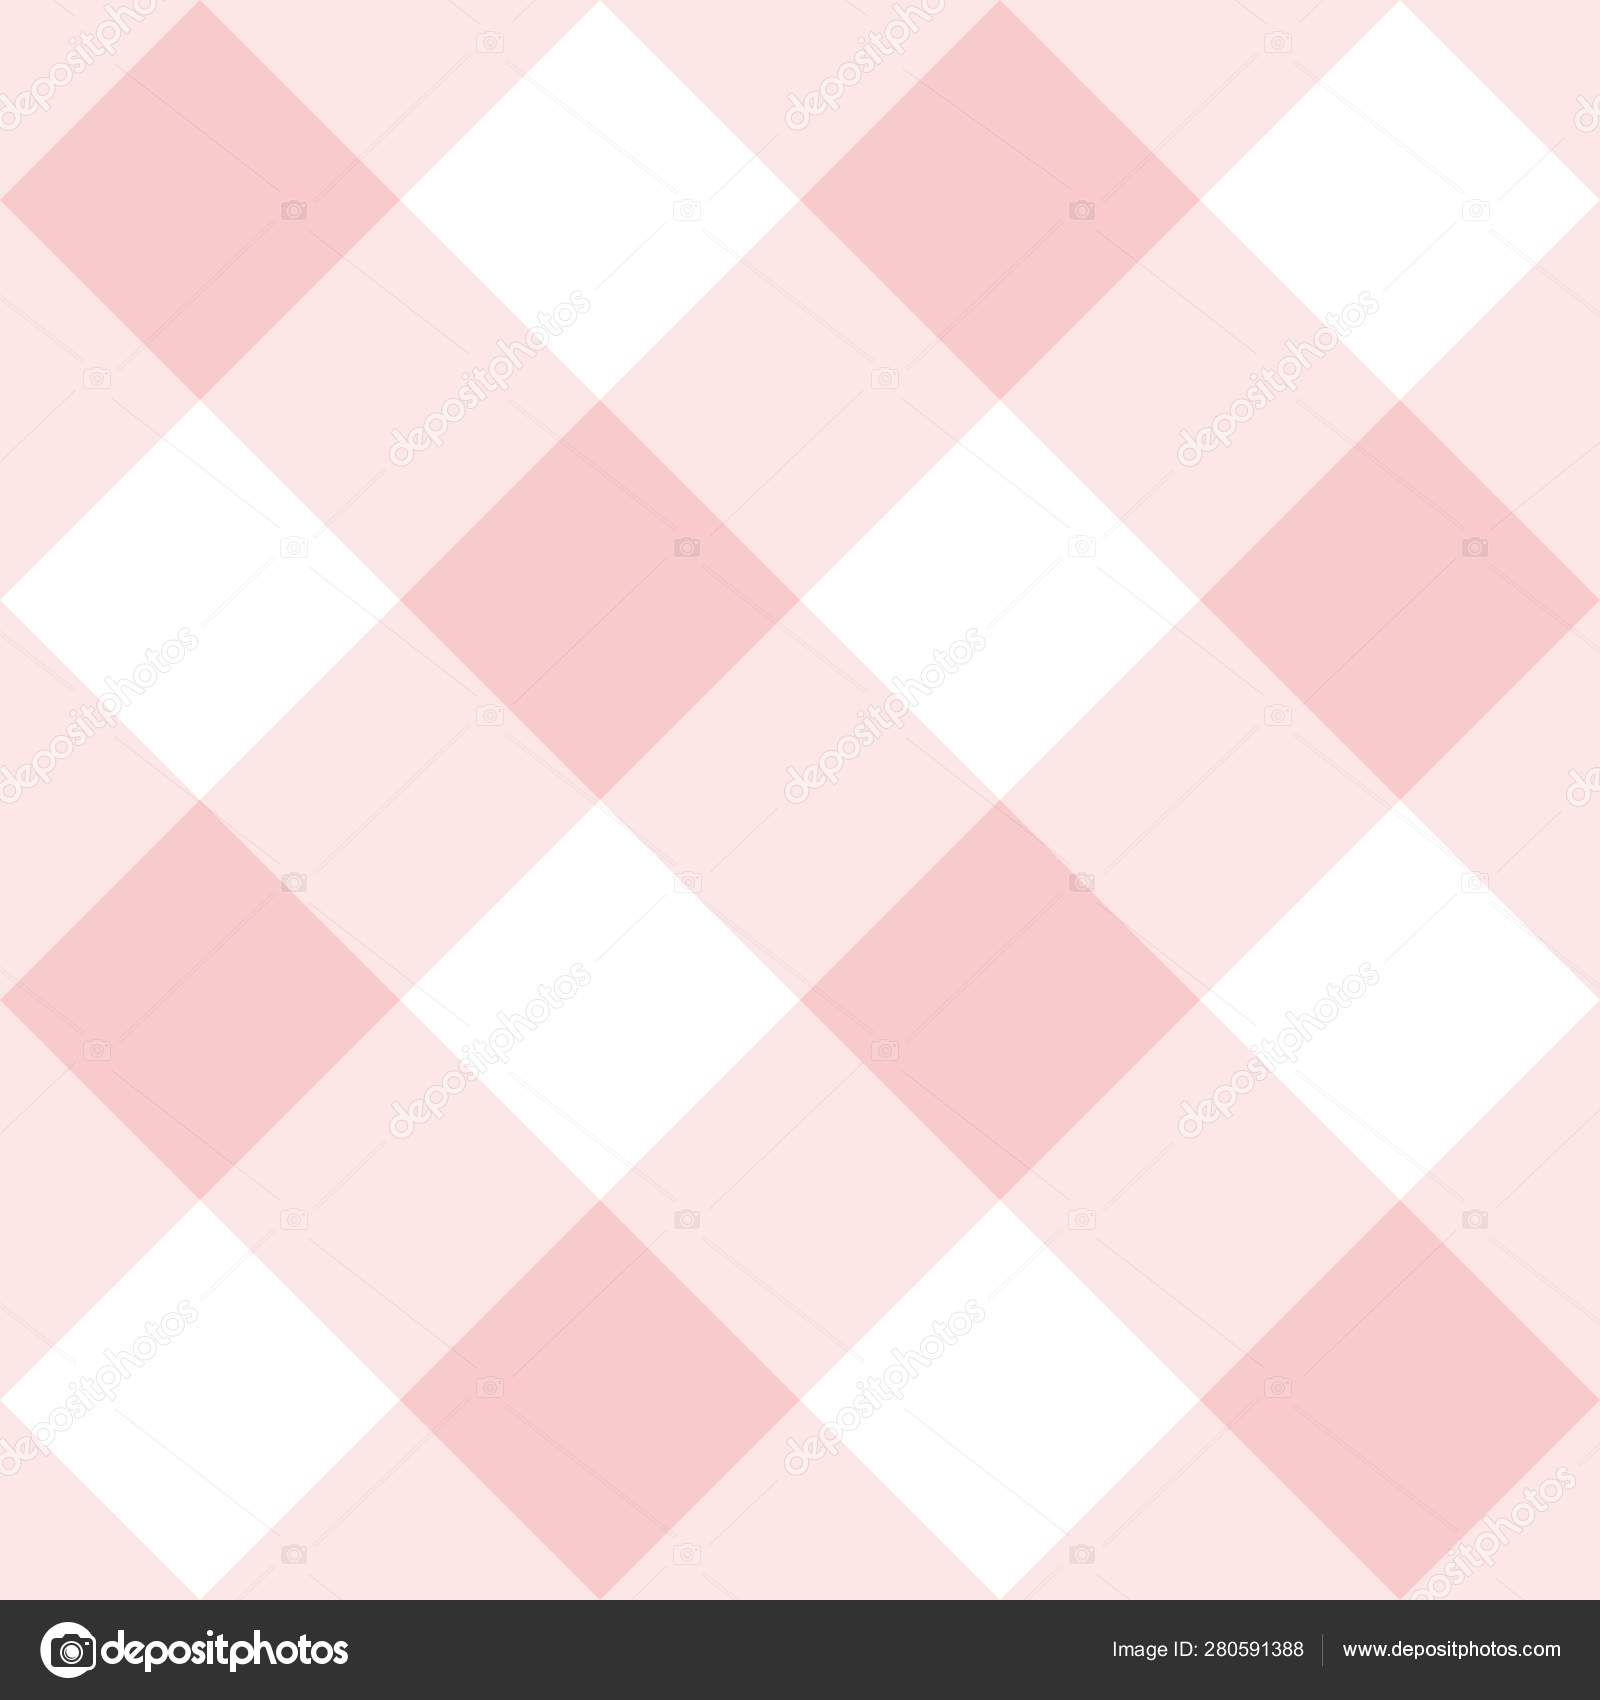 Pink And White Grid Wallpaper